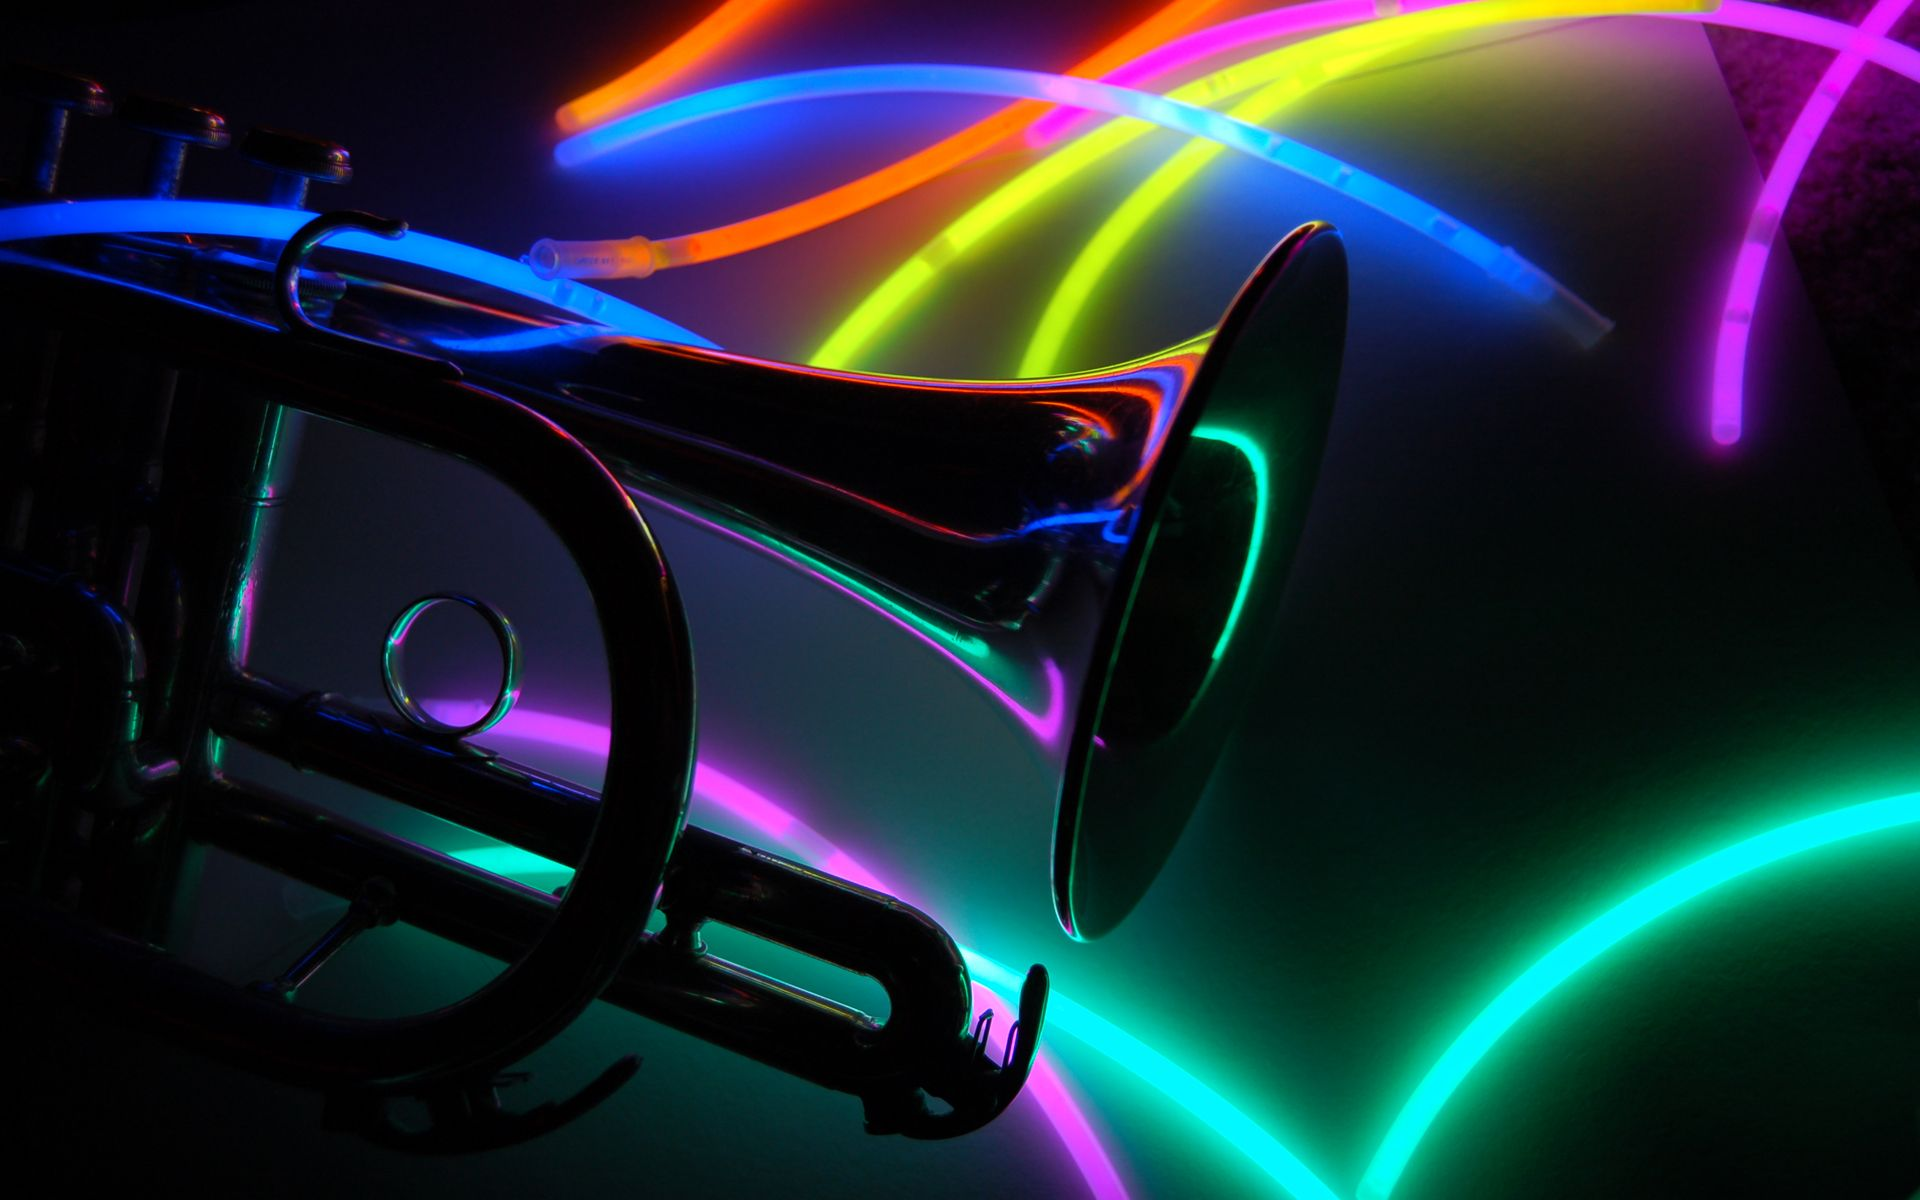 Neon Music Notes Background Neon Trumpet Artwork